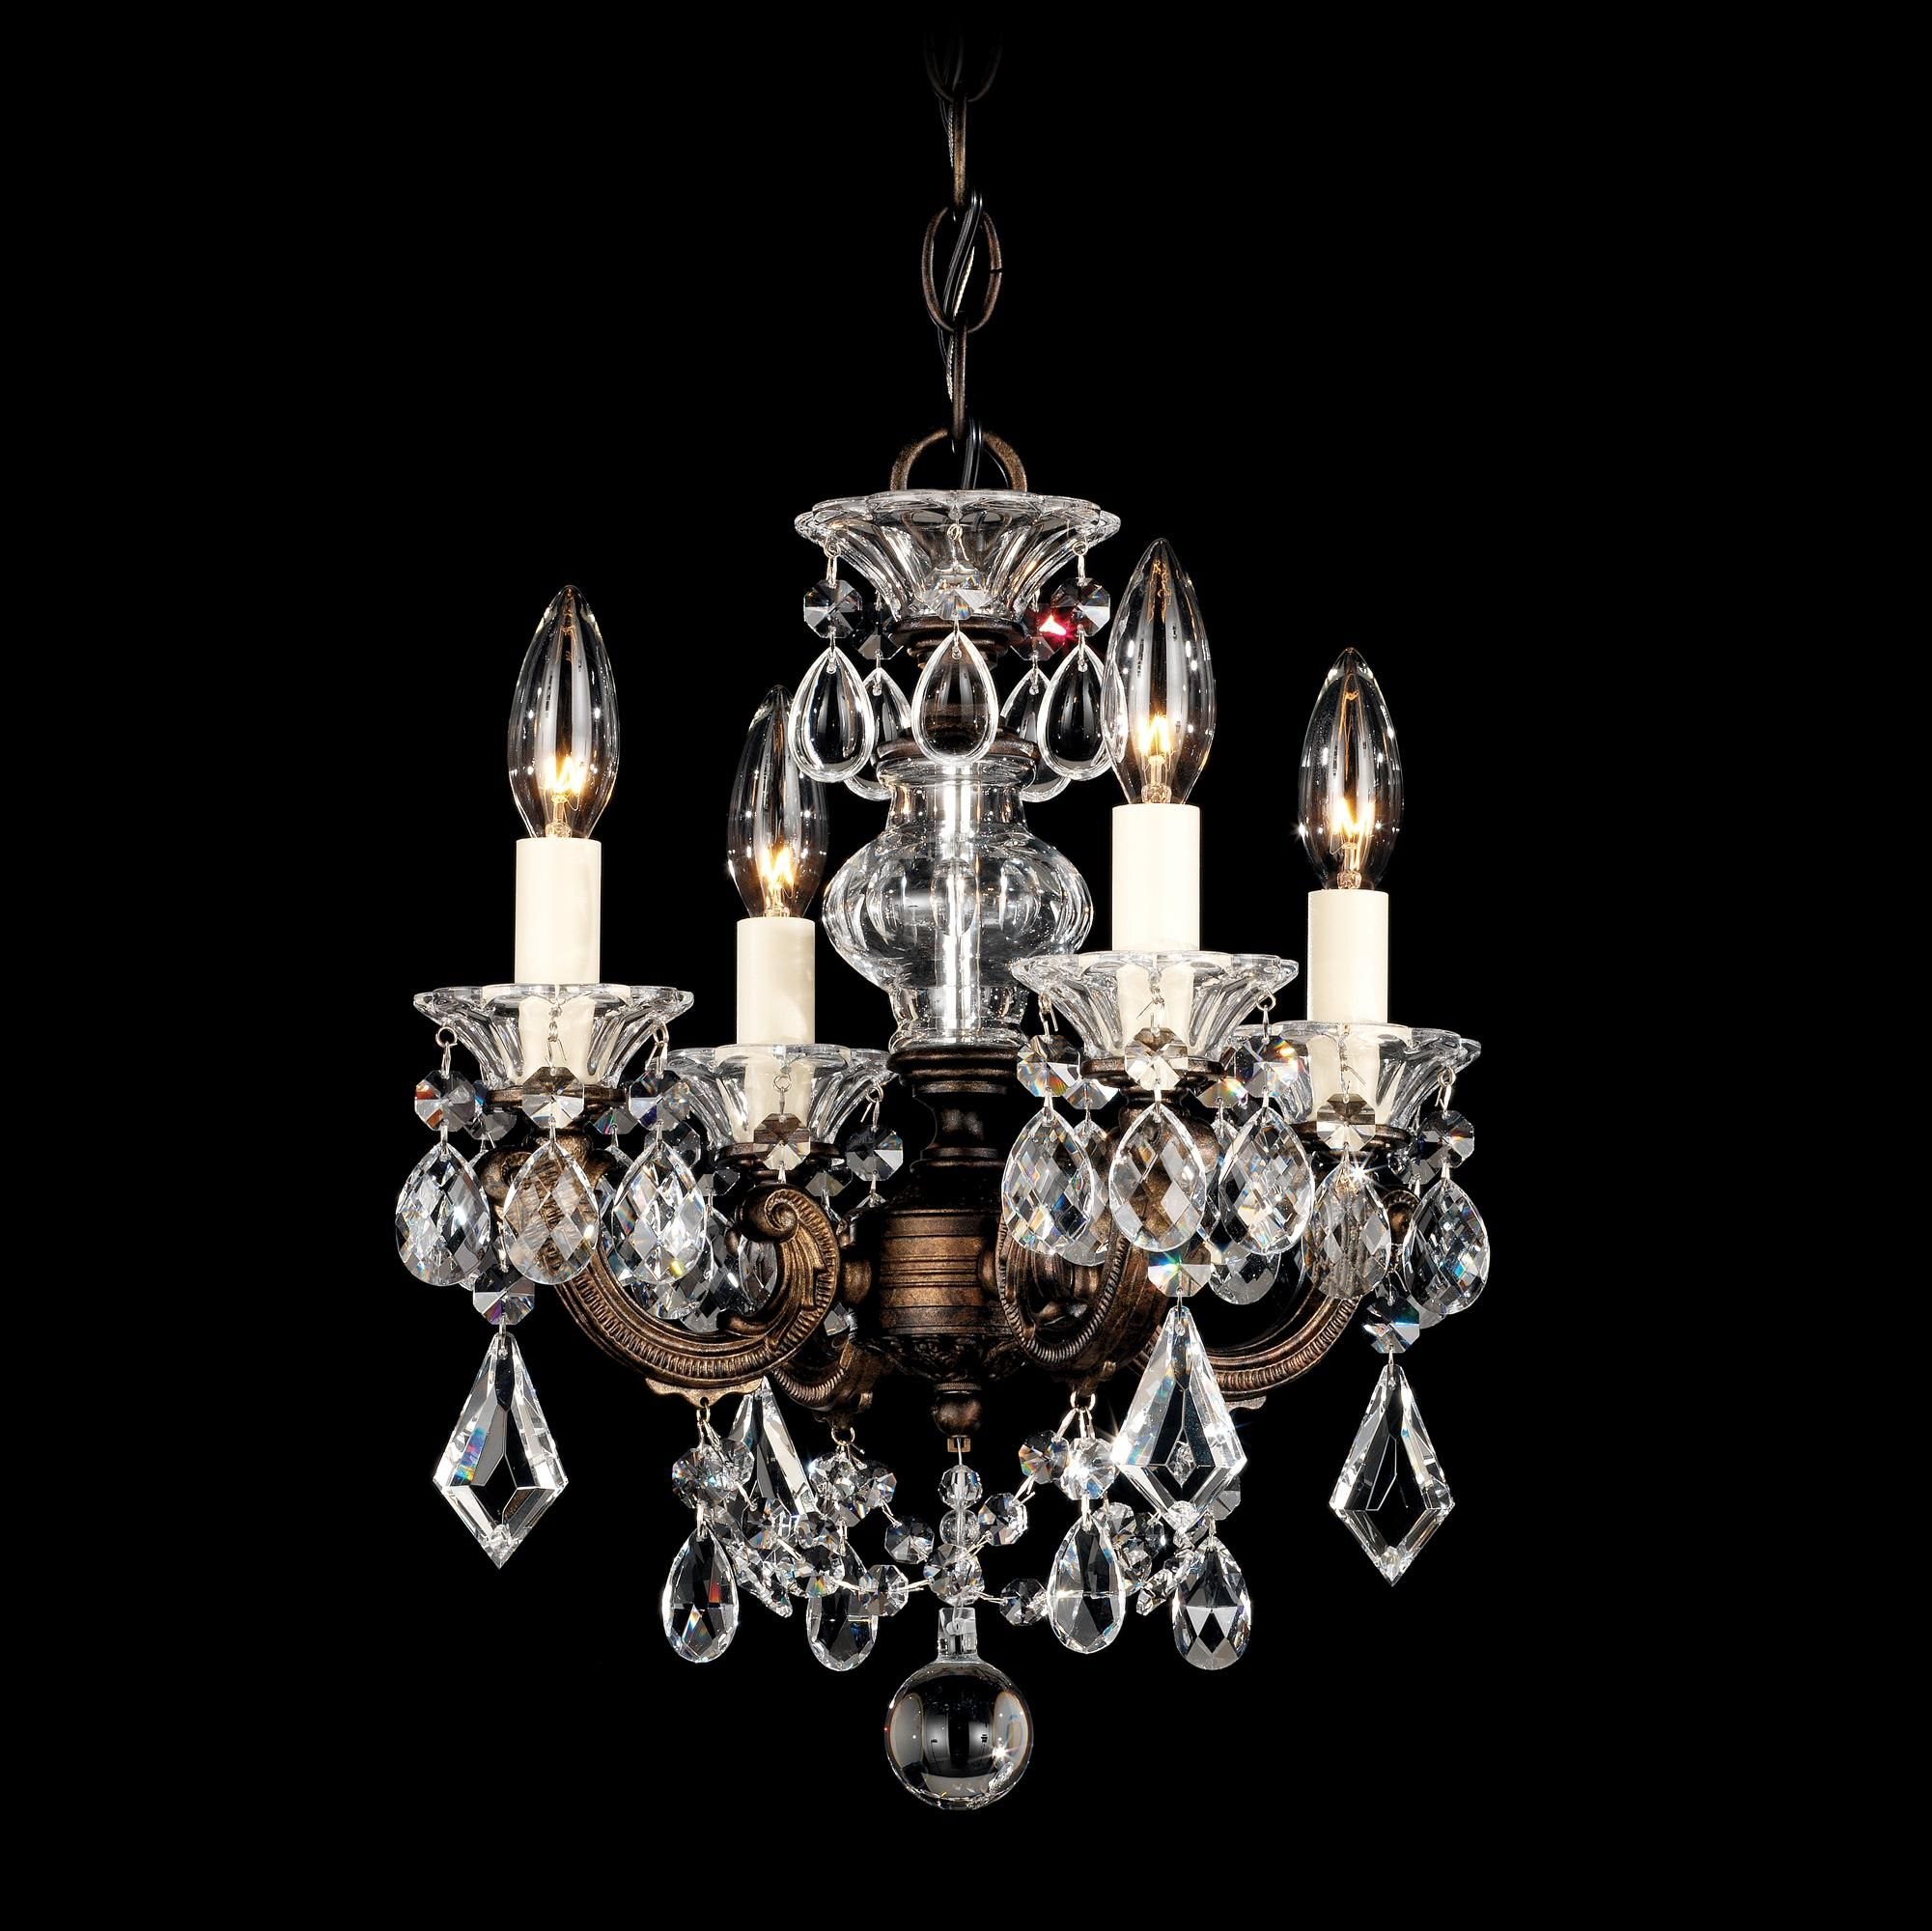 chandelier crystal bcjustice other mini image of bathroom chandeliers com one toilet for